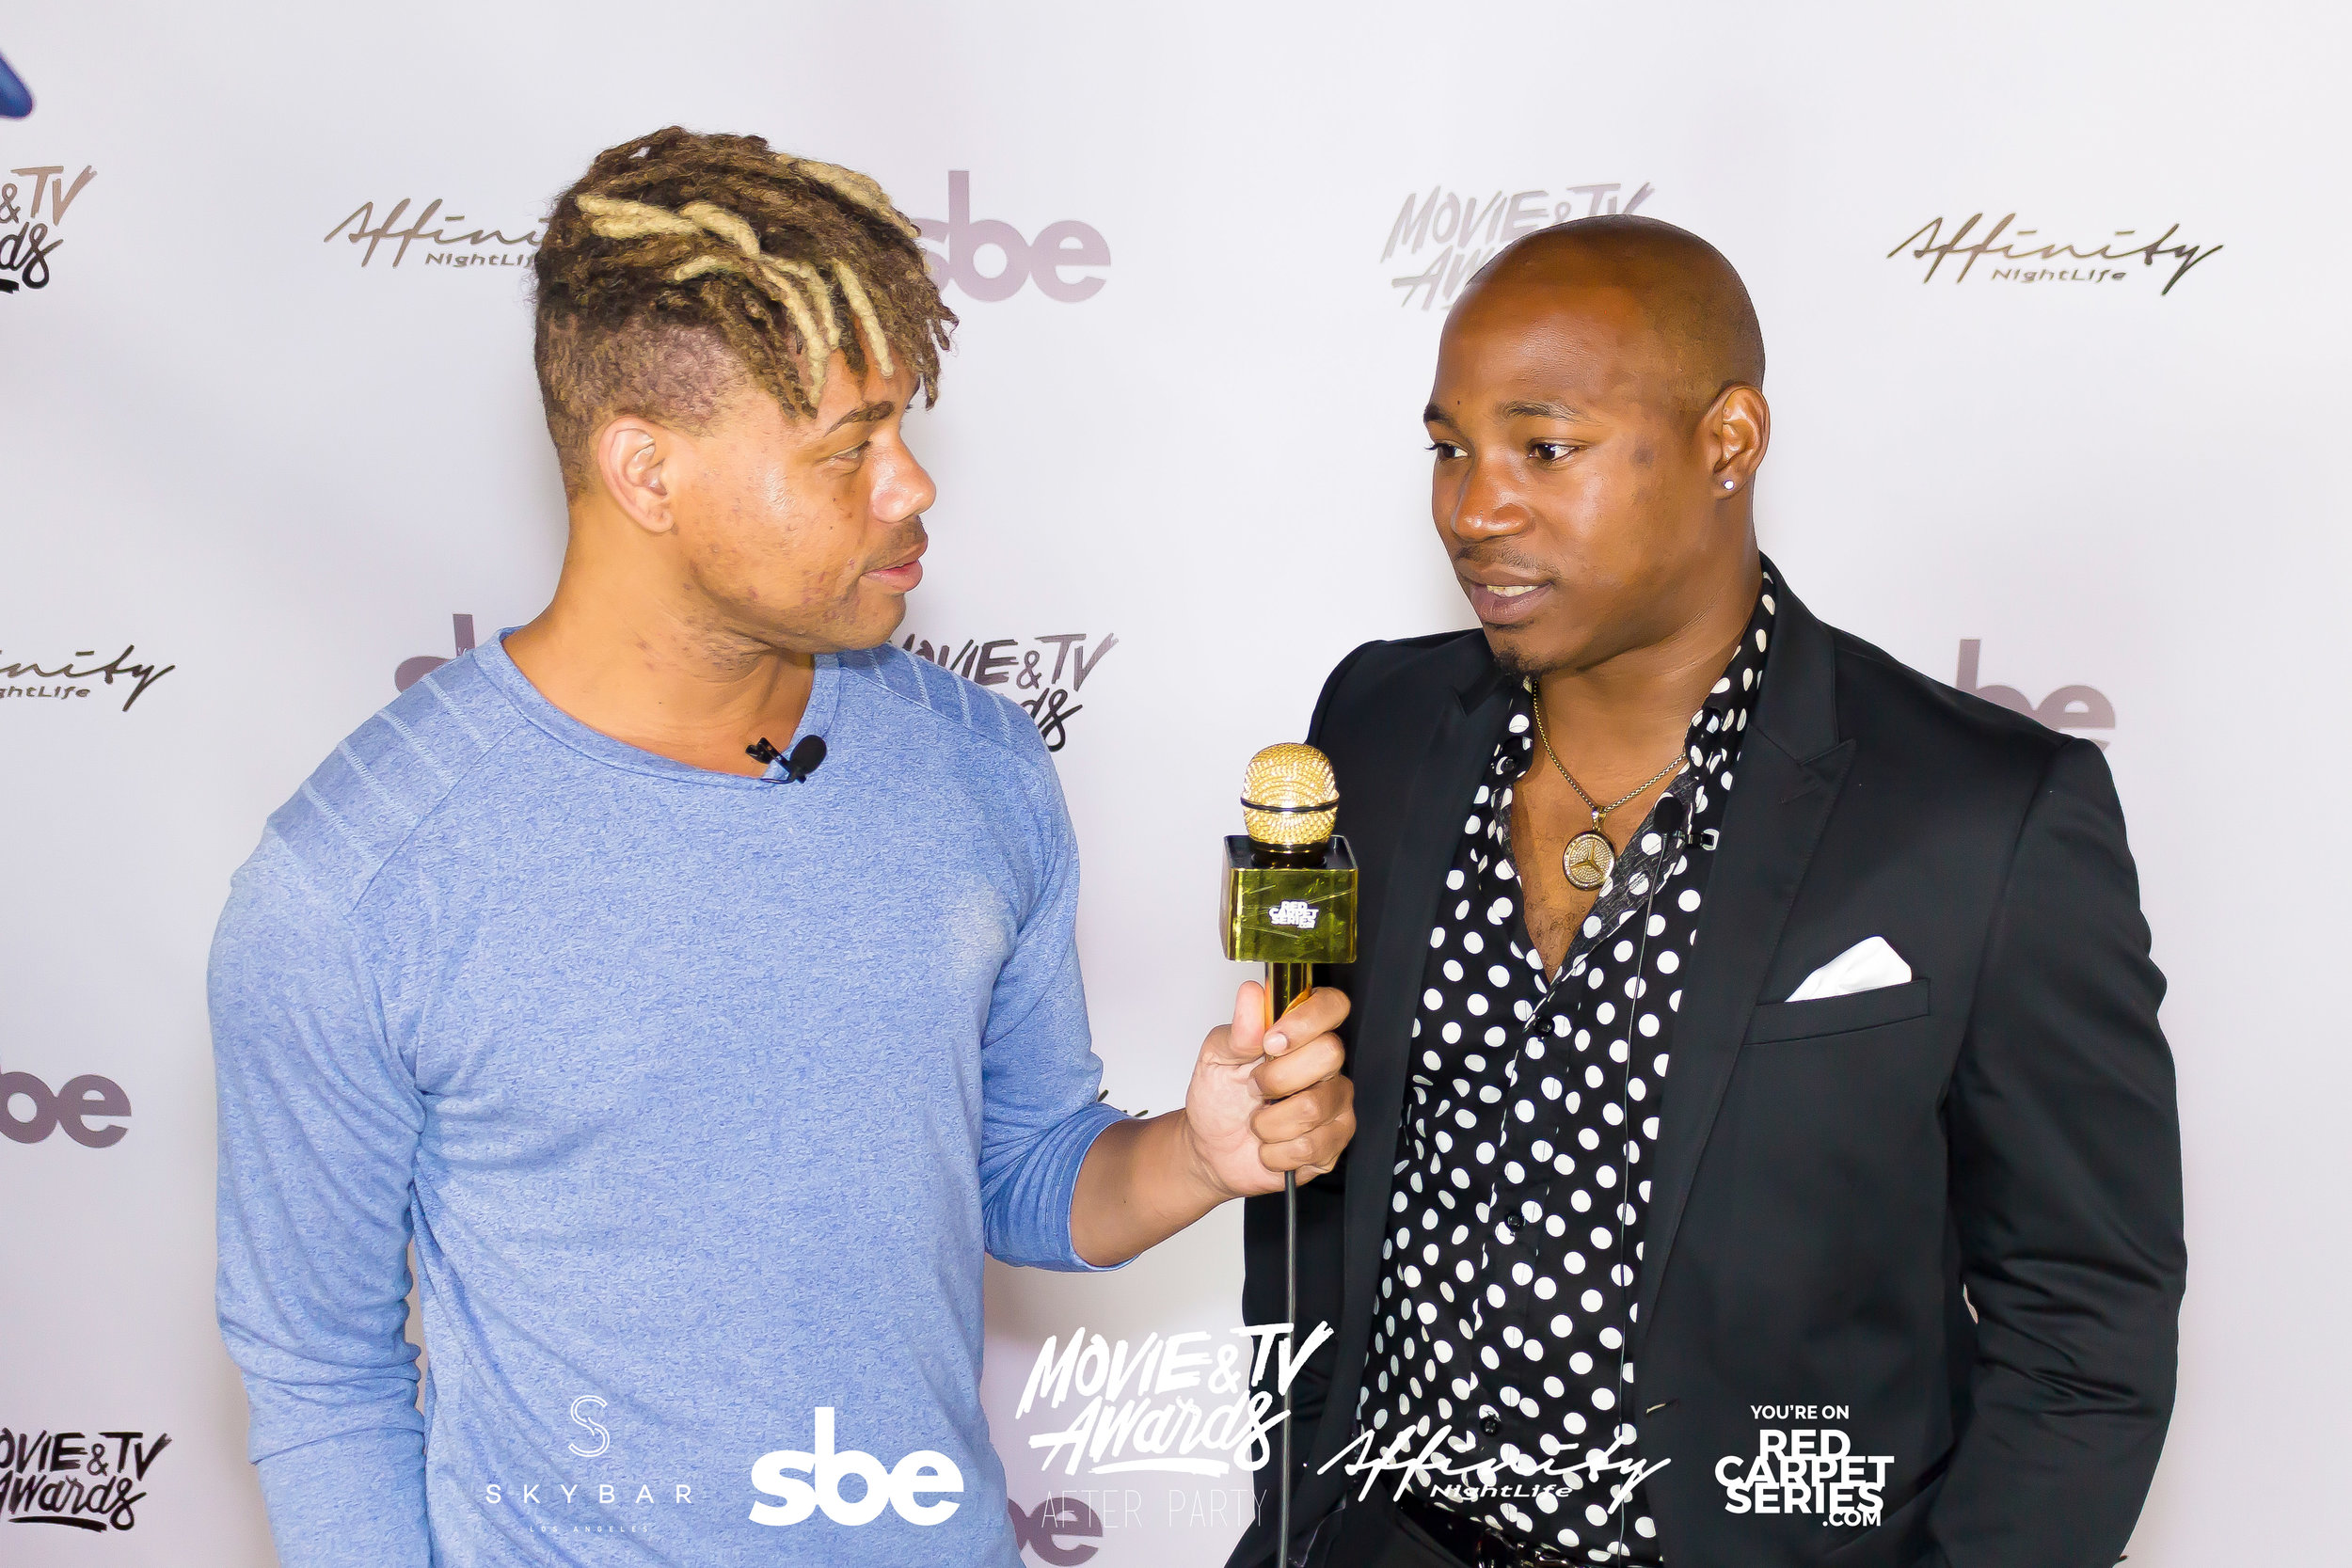 Affinity Nightlife MTV Movie & TV Awards After Party - Skybar at Mondrian - 06-15-19 - Vol. 1_37.jpg